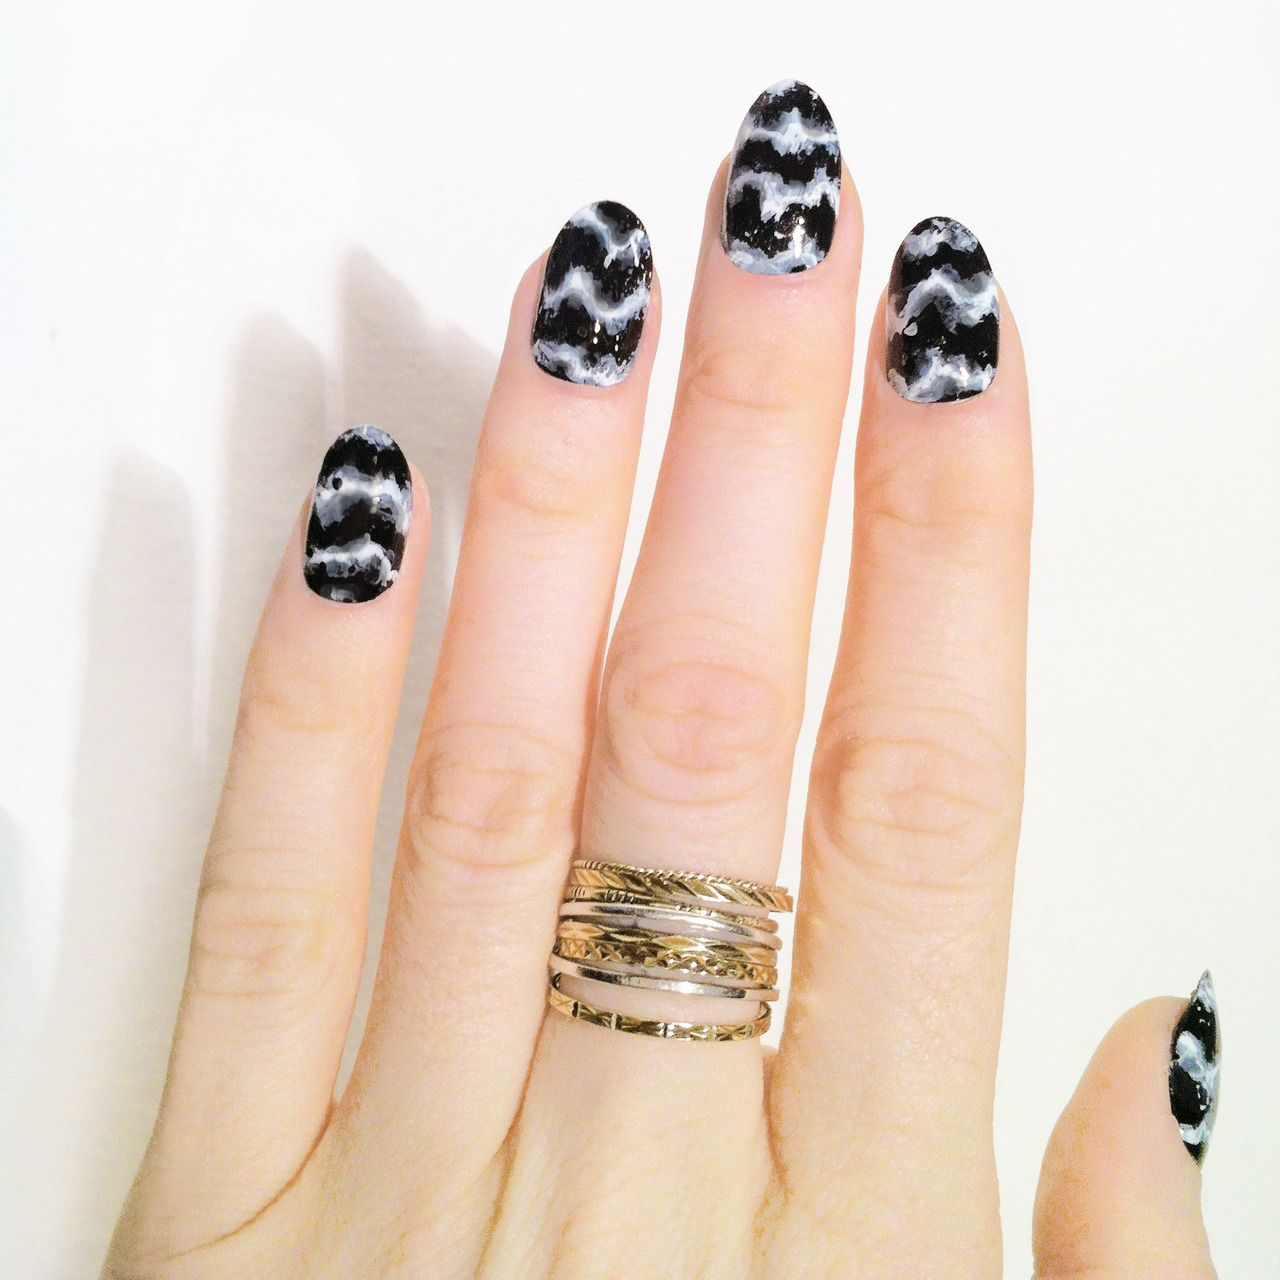 Nail Art Video Download Mp4: MADELINE POOLE - Tiger Marble....amaze!